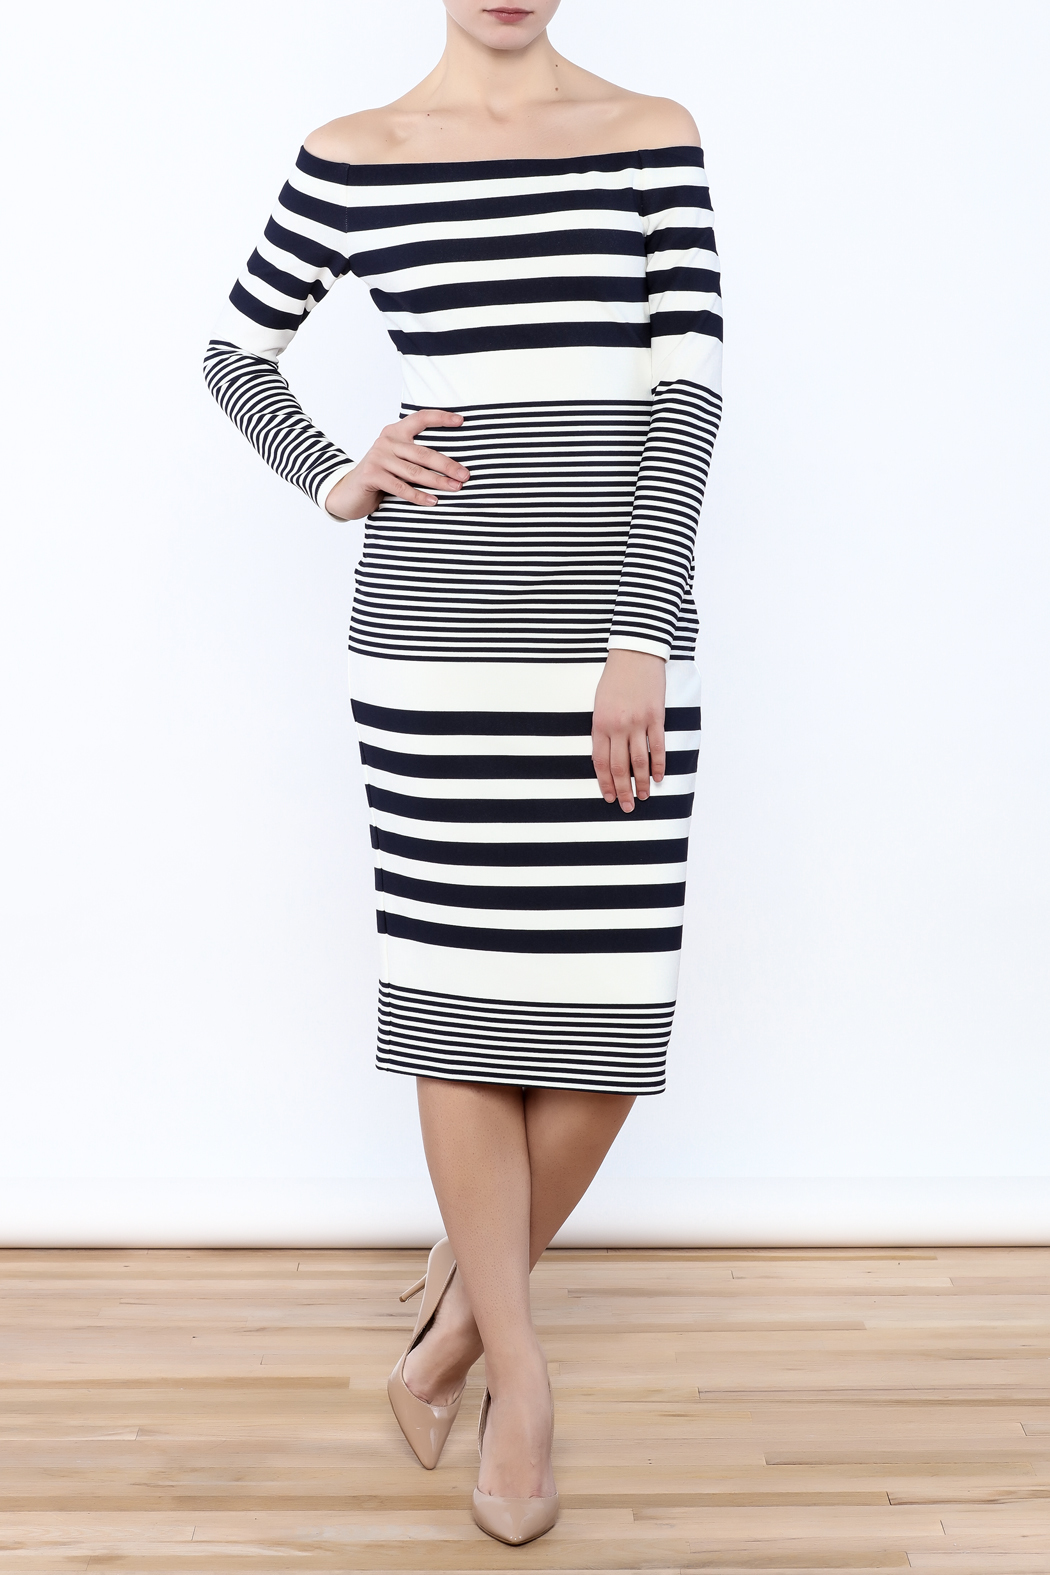 Eliza J Off Shoulder Striped Dress - Main Image